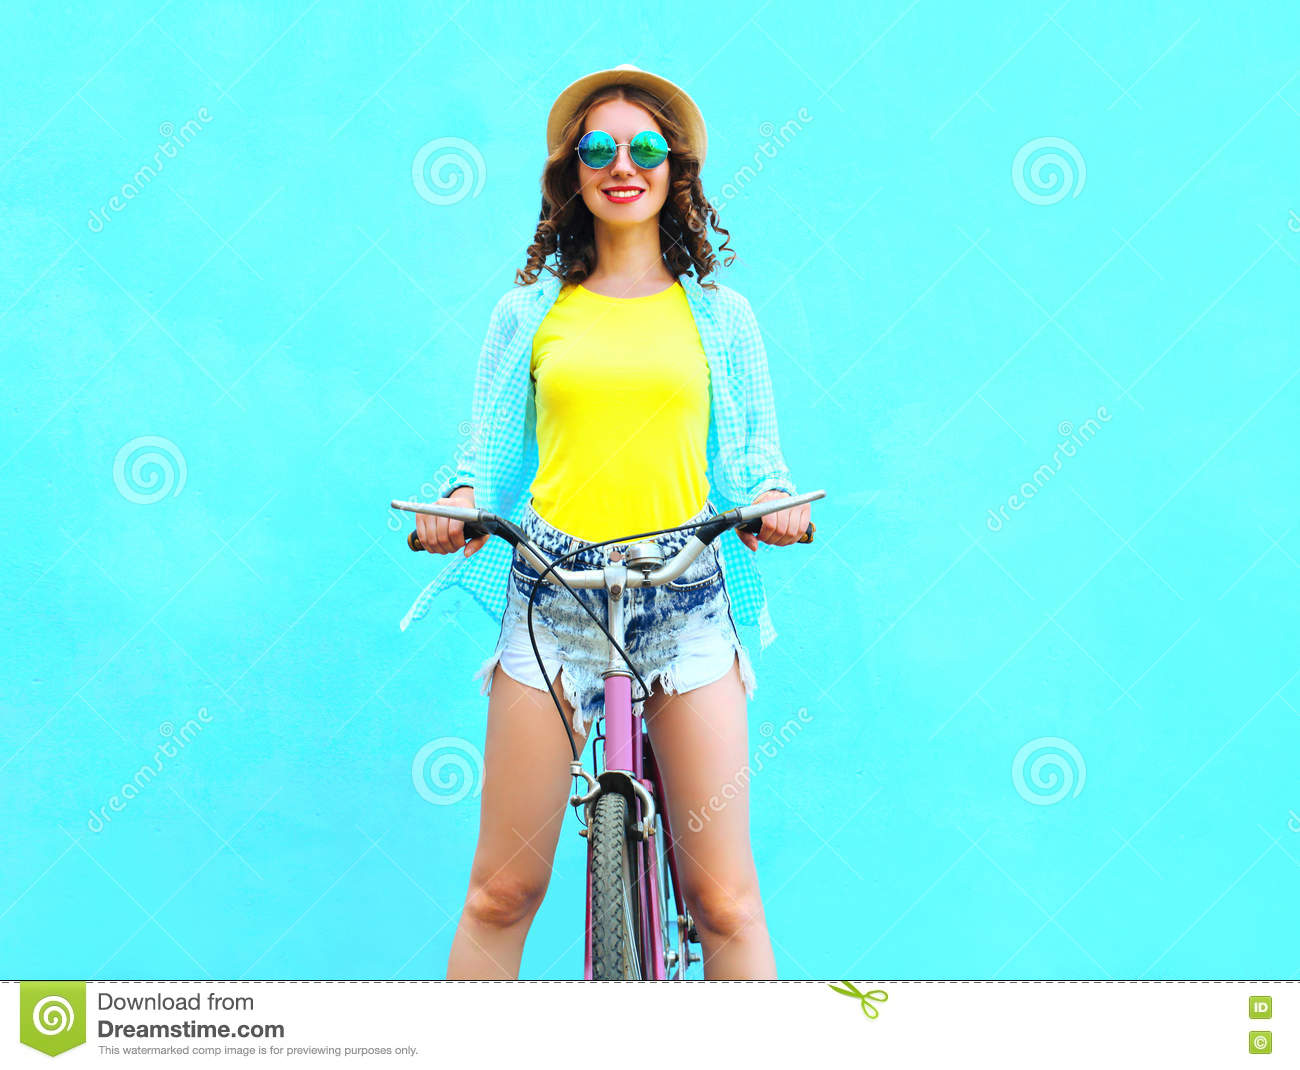 Happy Pretty Smiling Woman Rides A Bicycle Over Colorful ...